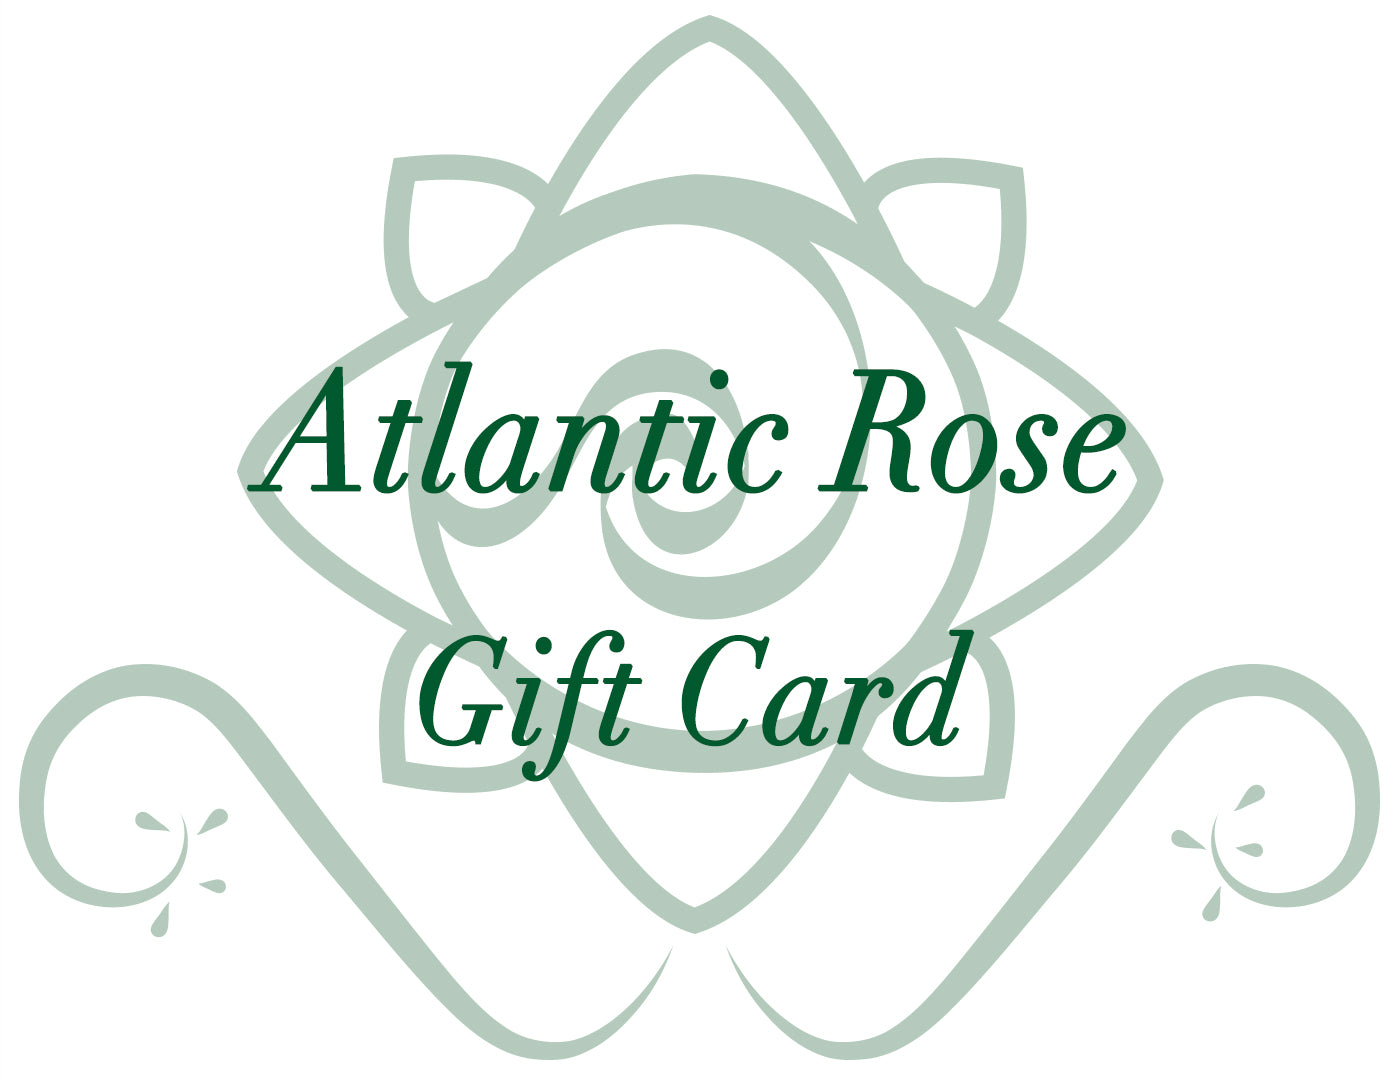 Atlantic Rose Gift Card - Atlantic Rose